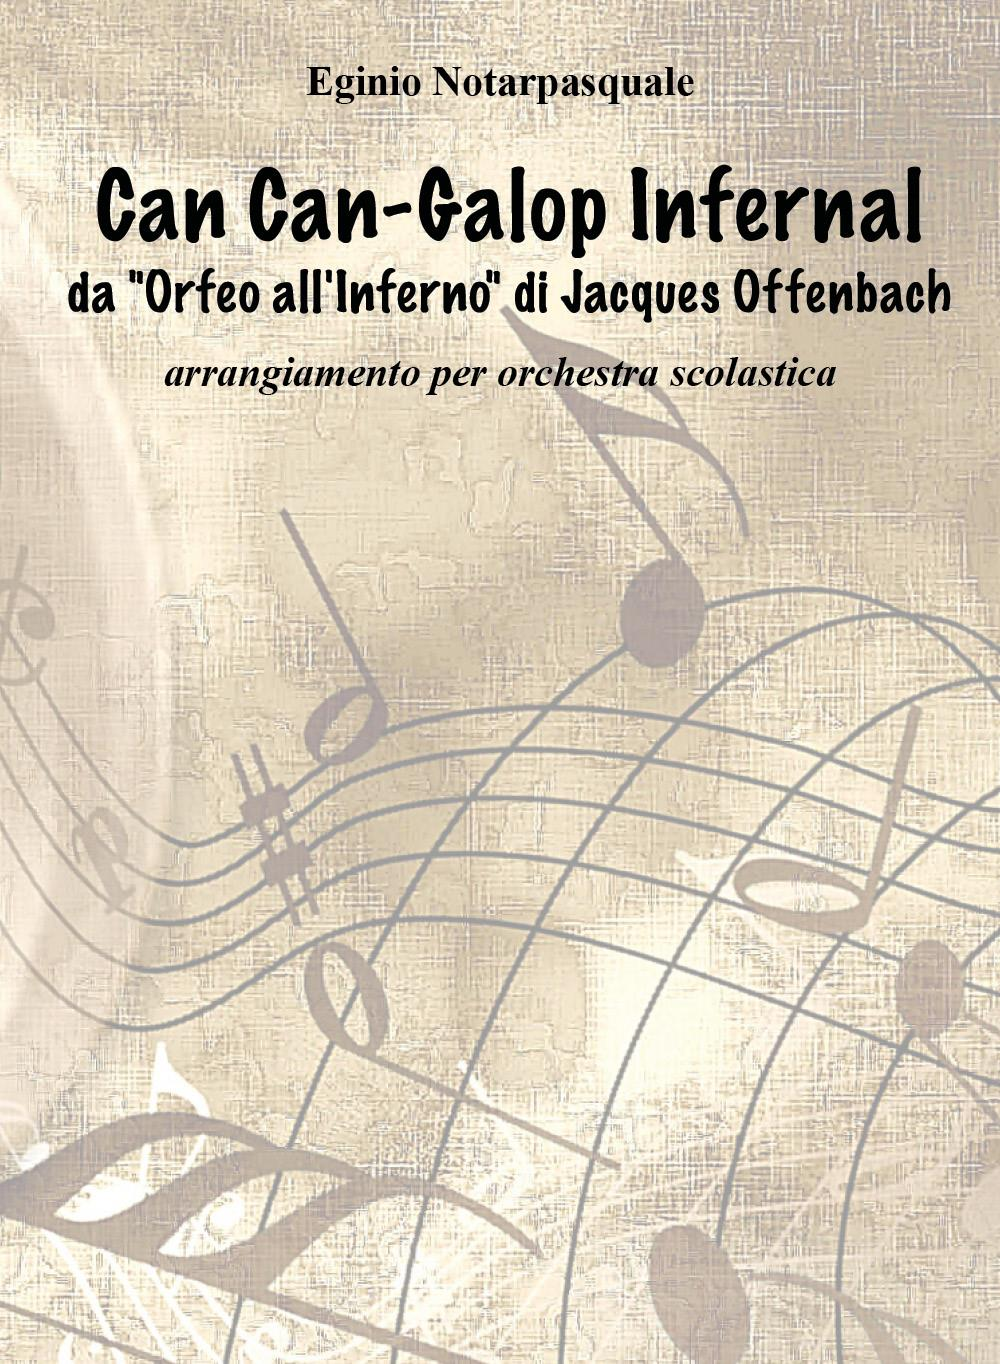 """Can-Can Galop Infernal da """"Orfeo all'inferno"""" di Jacques Offenbach"""